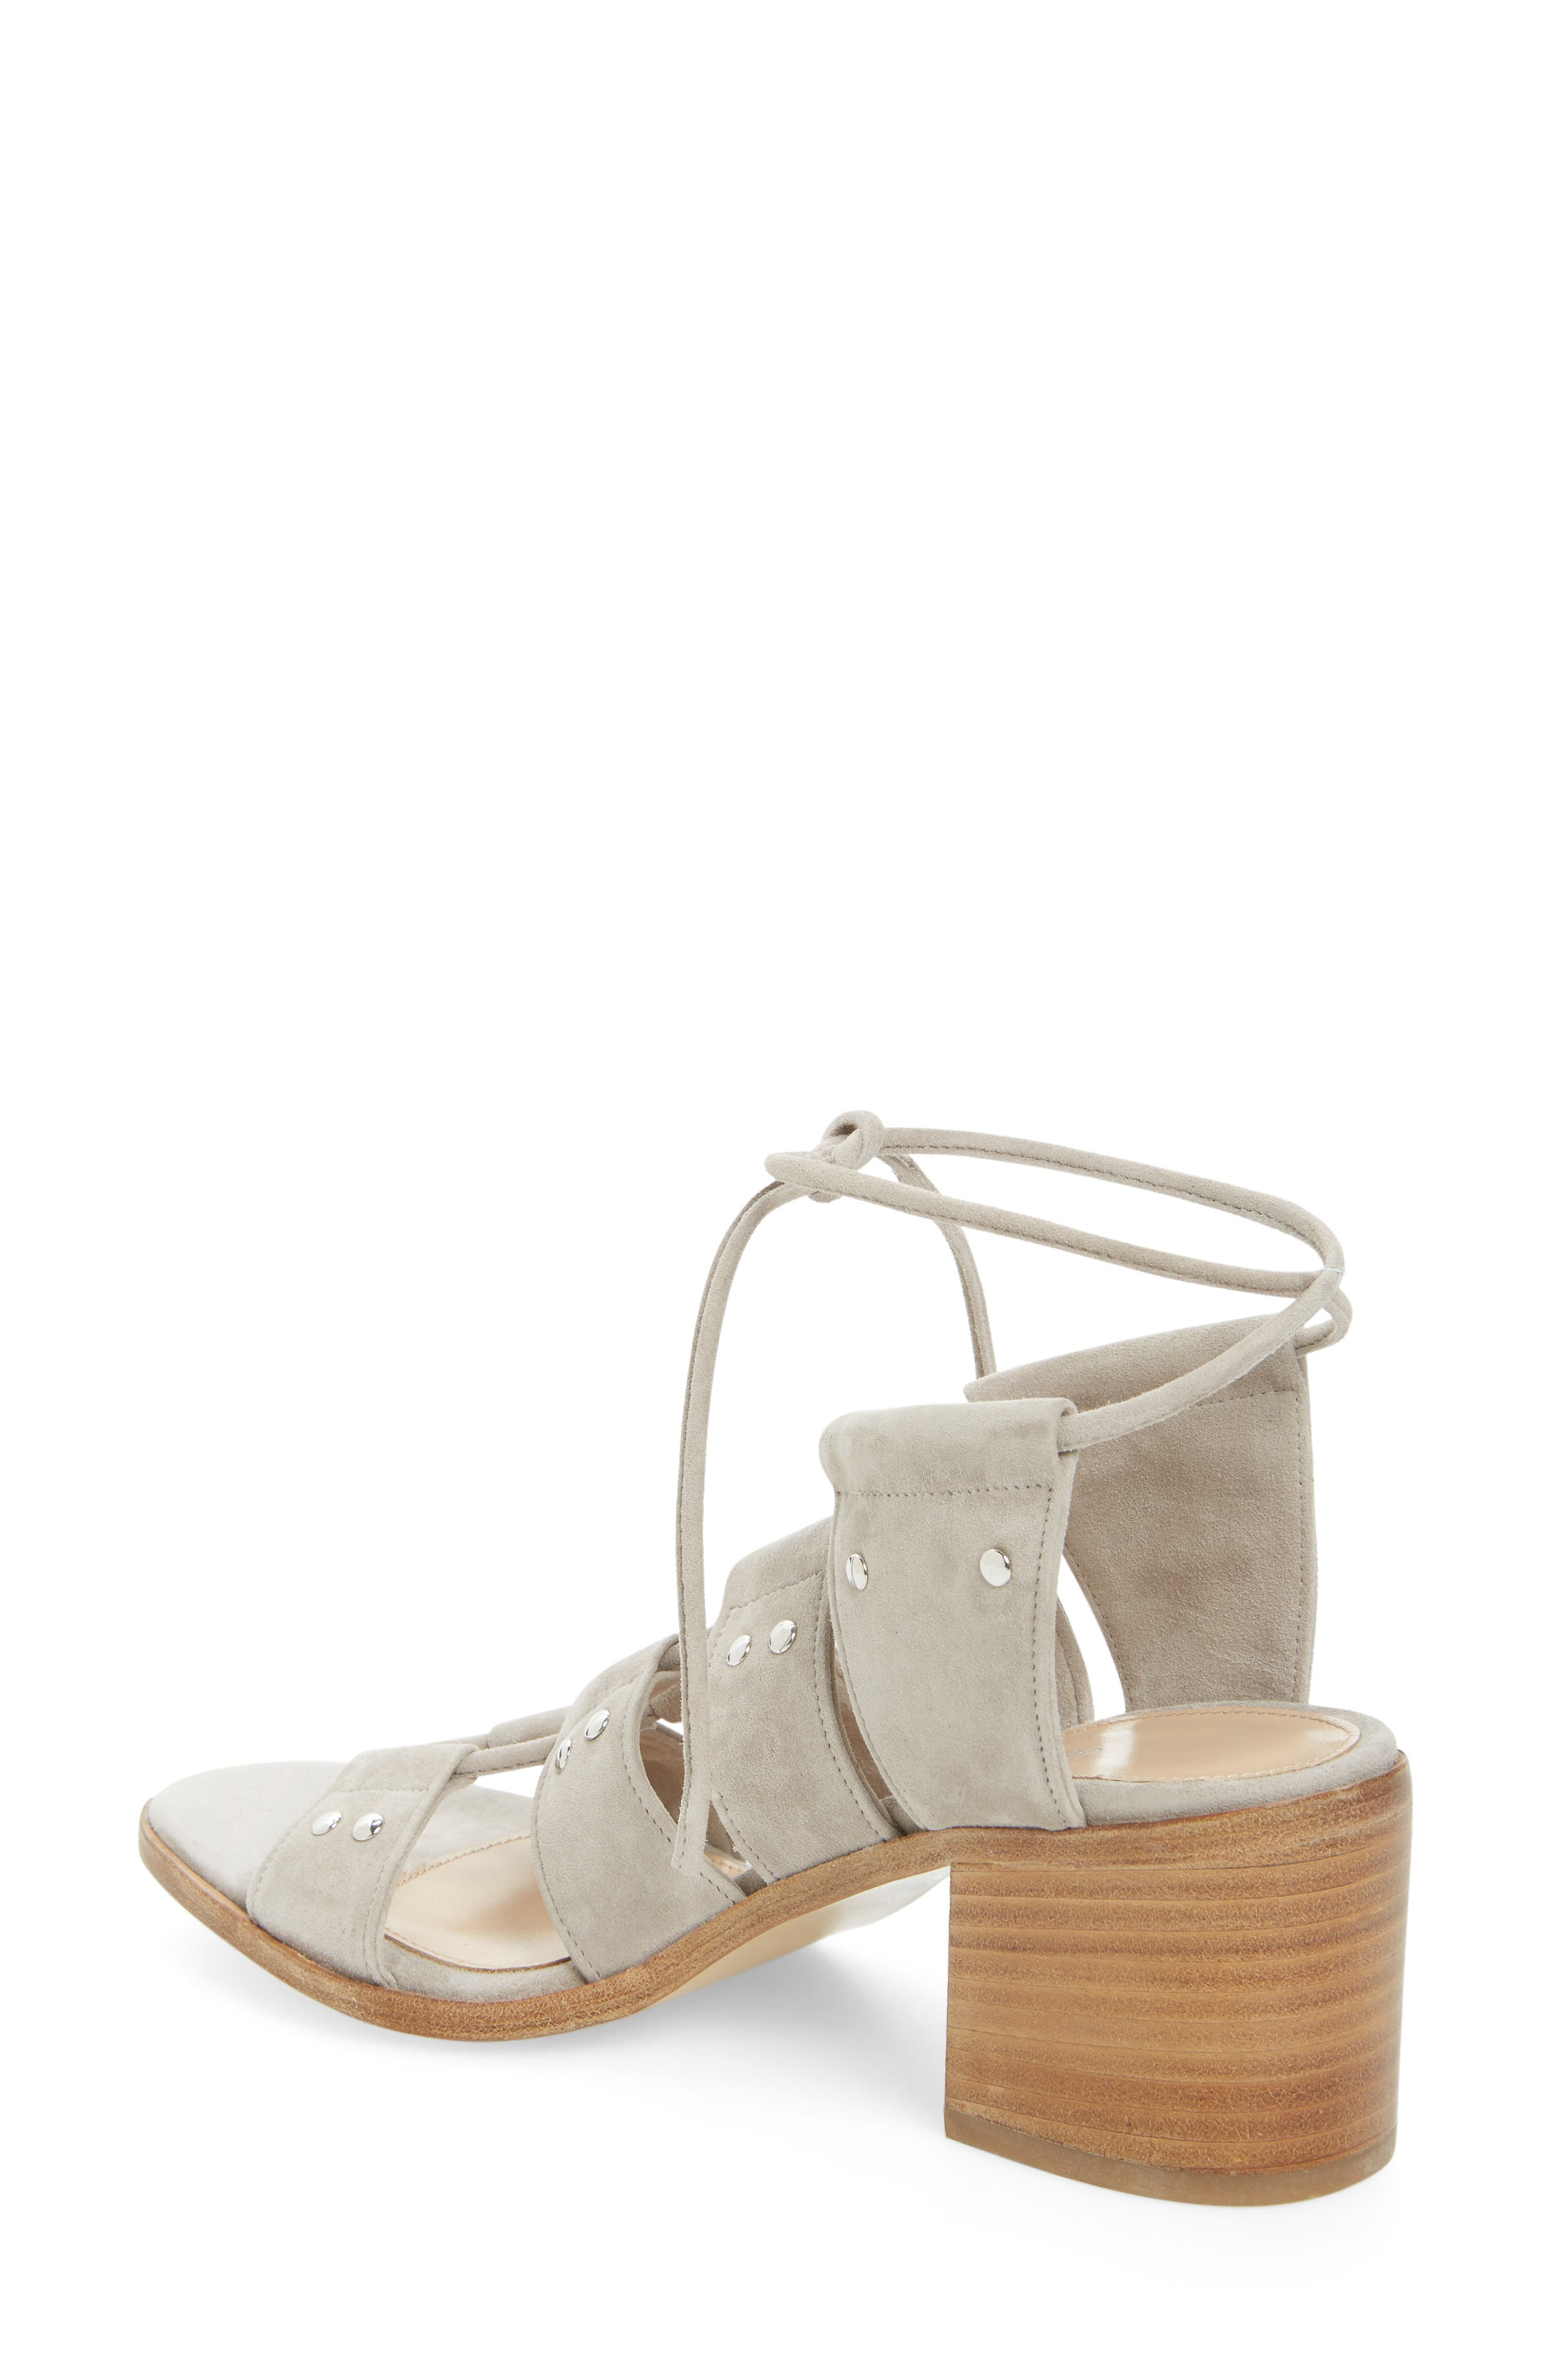 Birch Block Heel Sandal,                             Alternate thumbnail 2, color,                             017